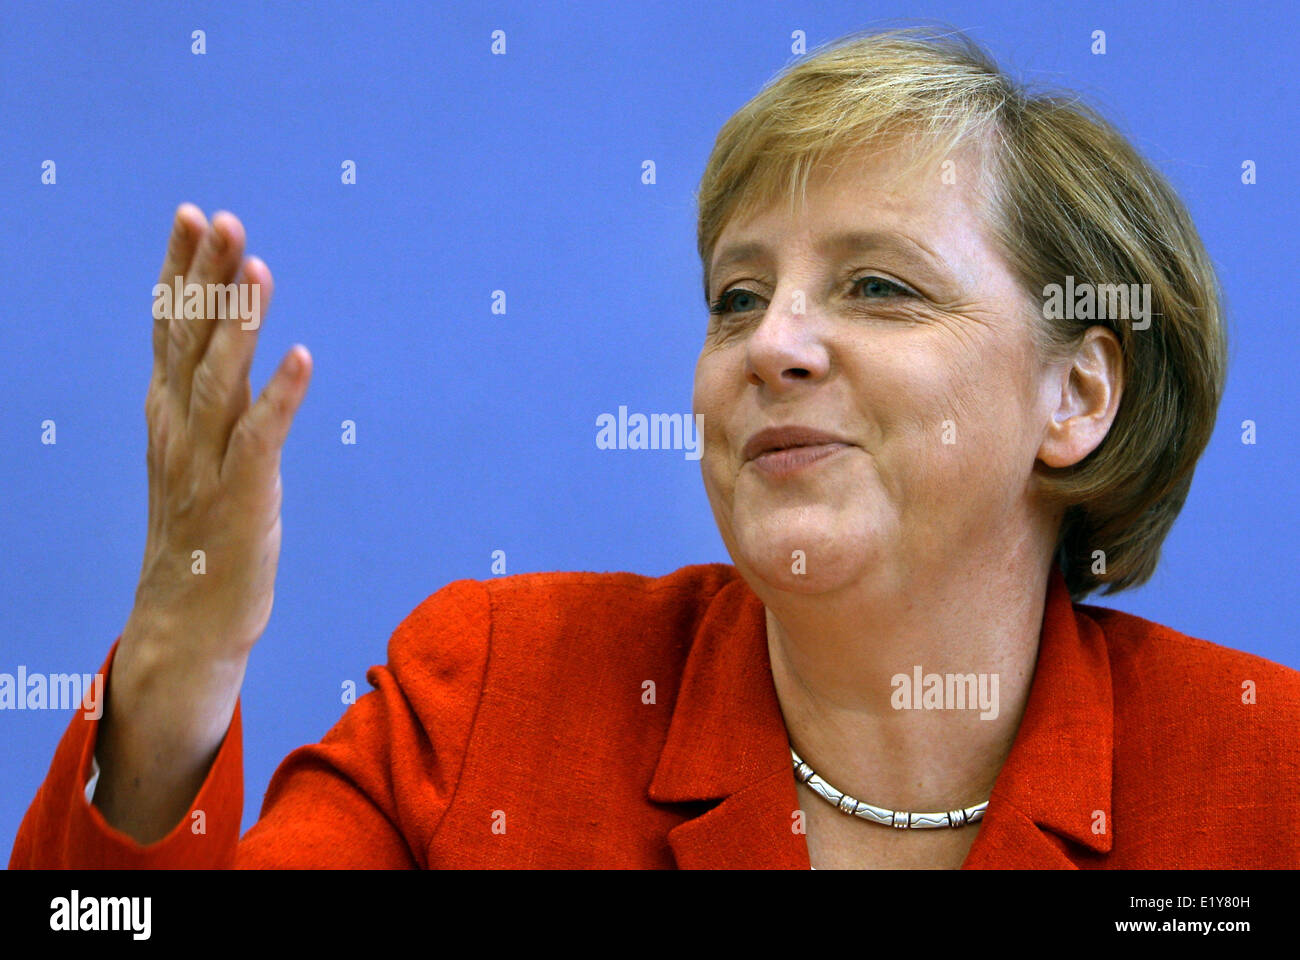 Chancellor Angela Merkel (CDU) gesticulates during a press conference in Berlin (21.08.2006) where she pronounced - Stock Image